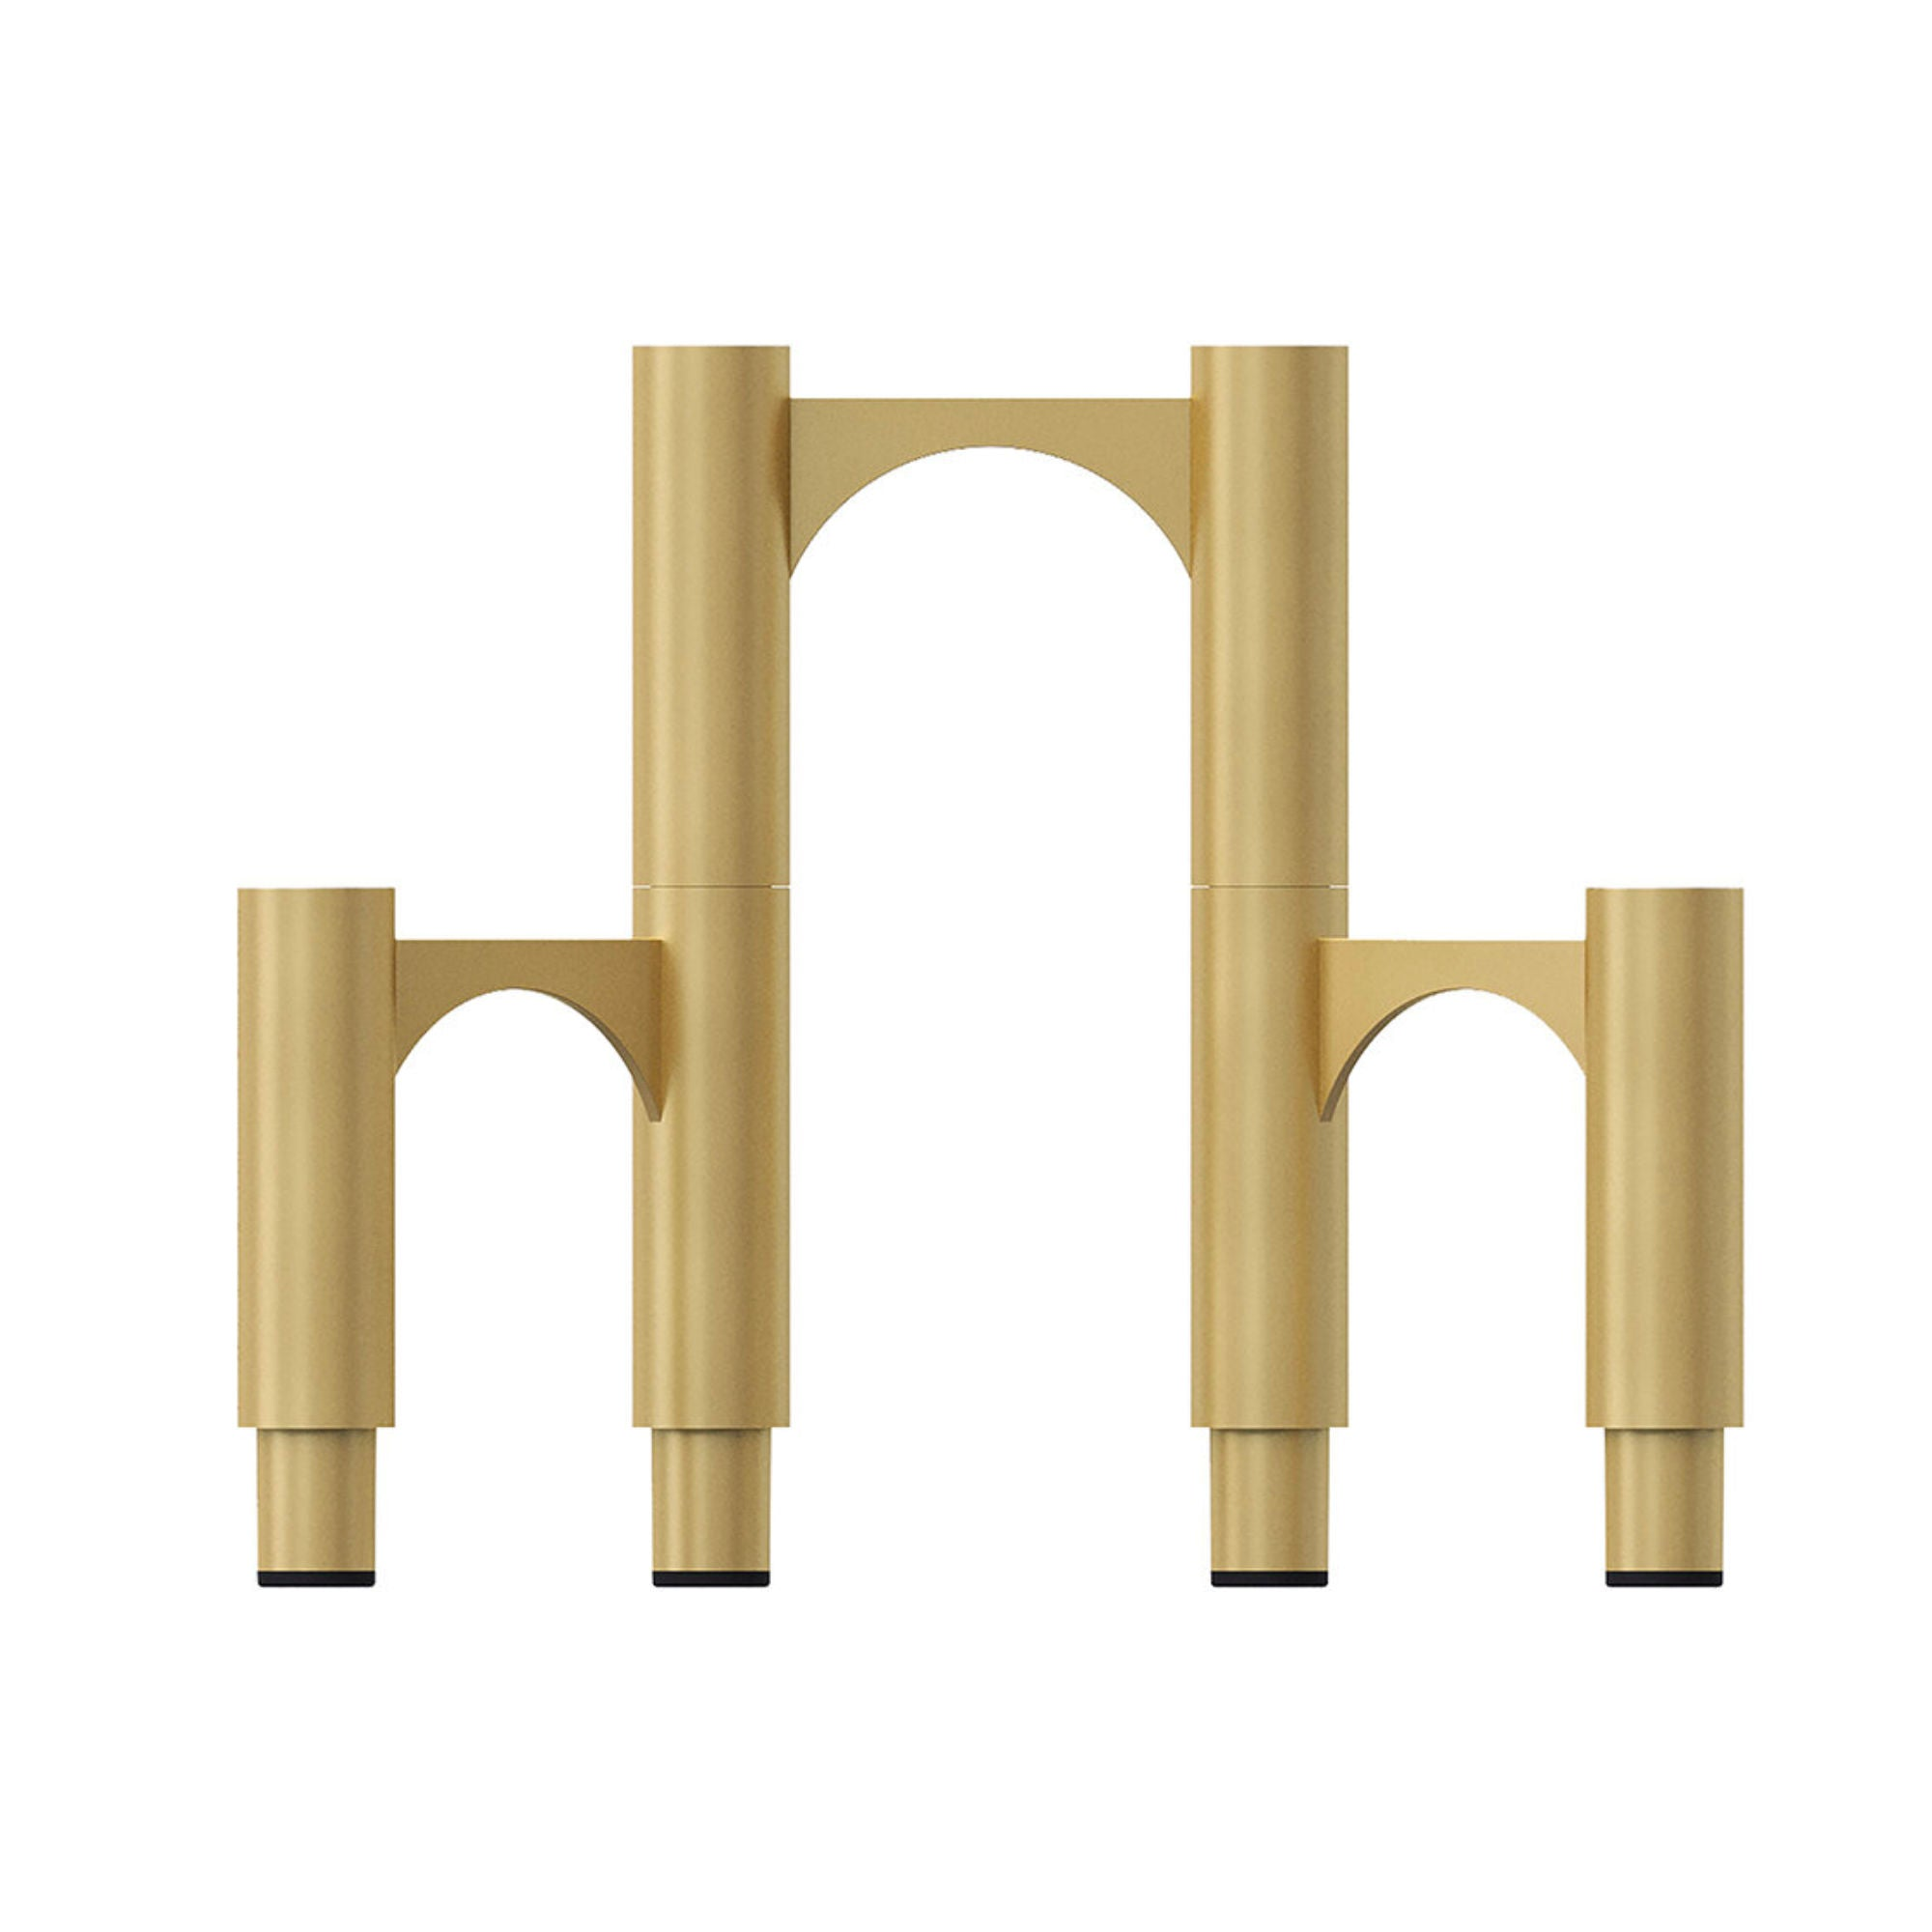 AYTM Compono Candle Holder Set of 3 , Gold